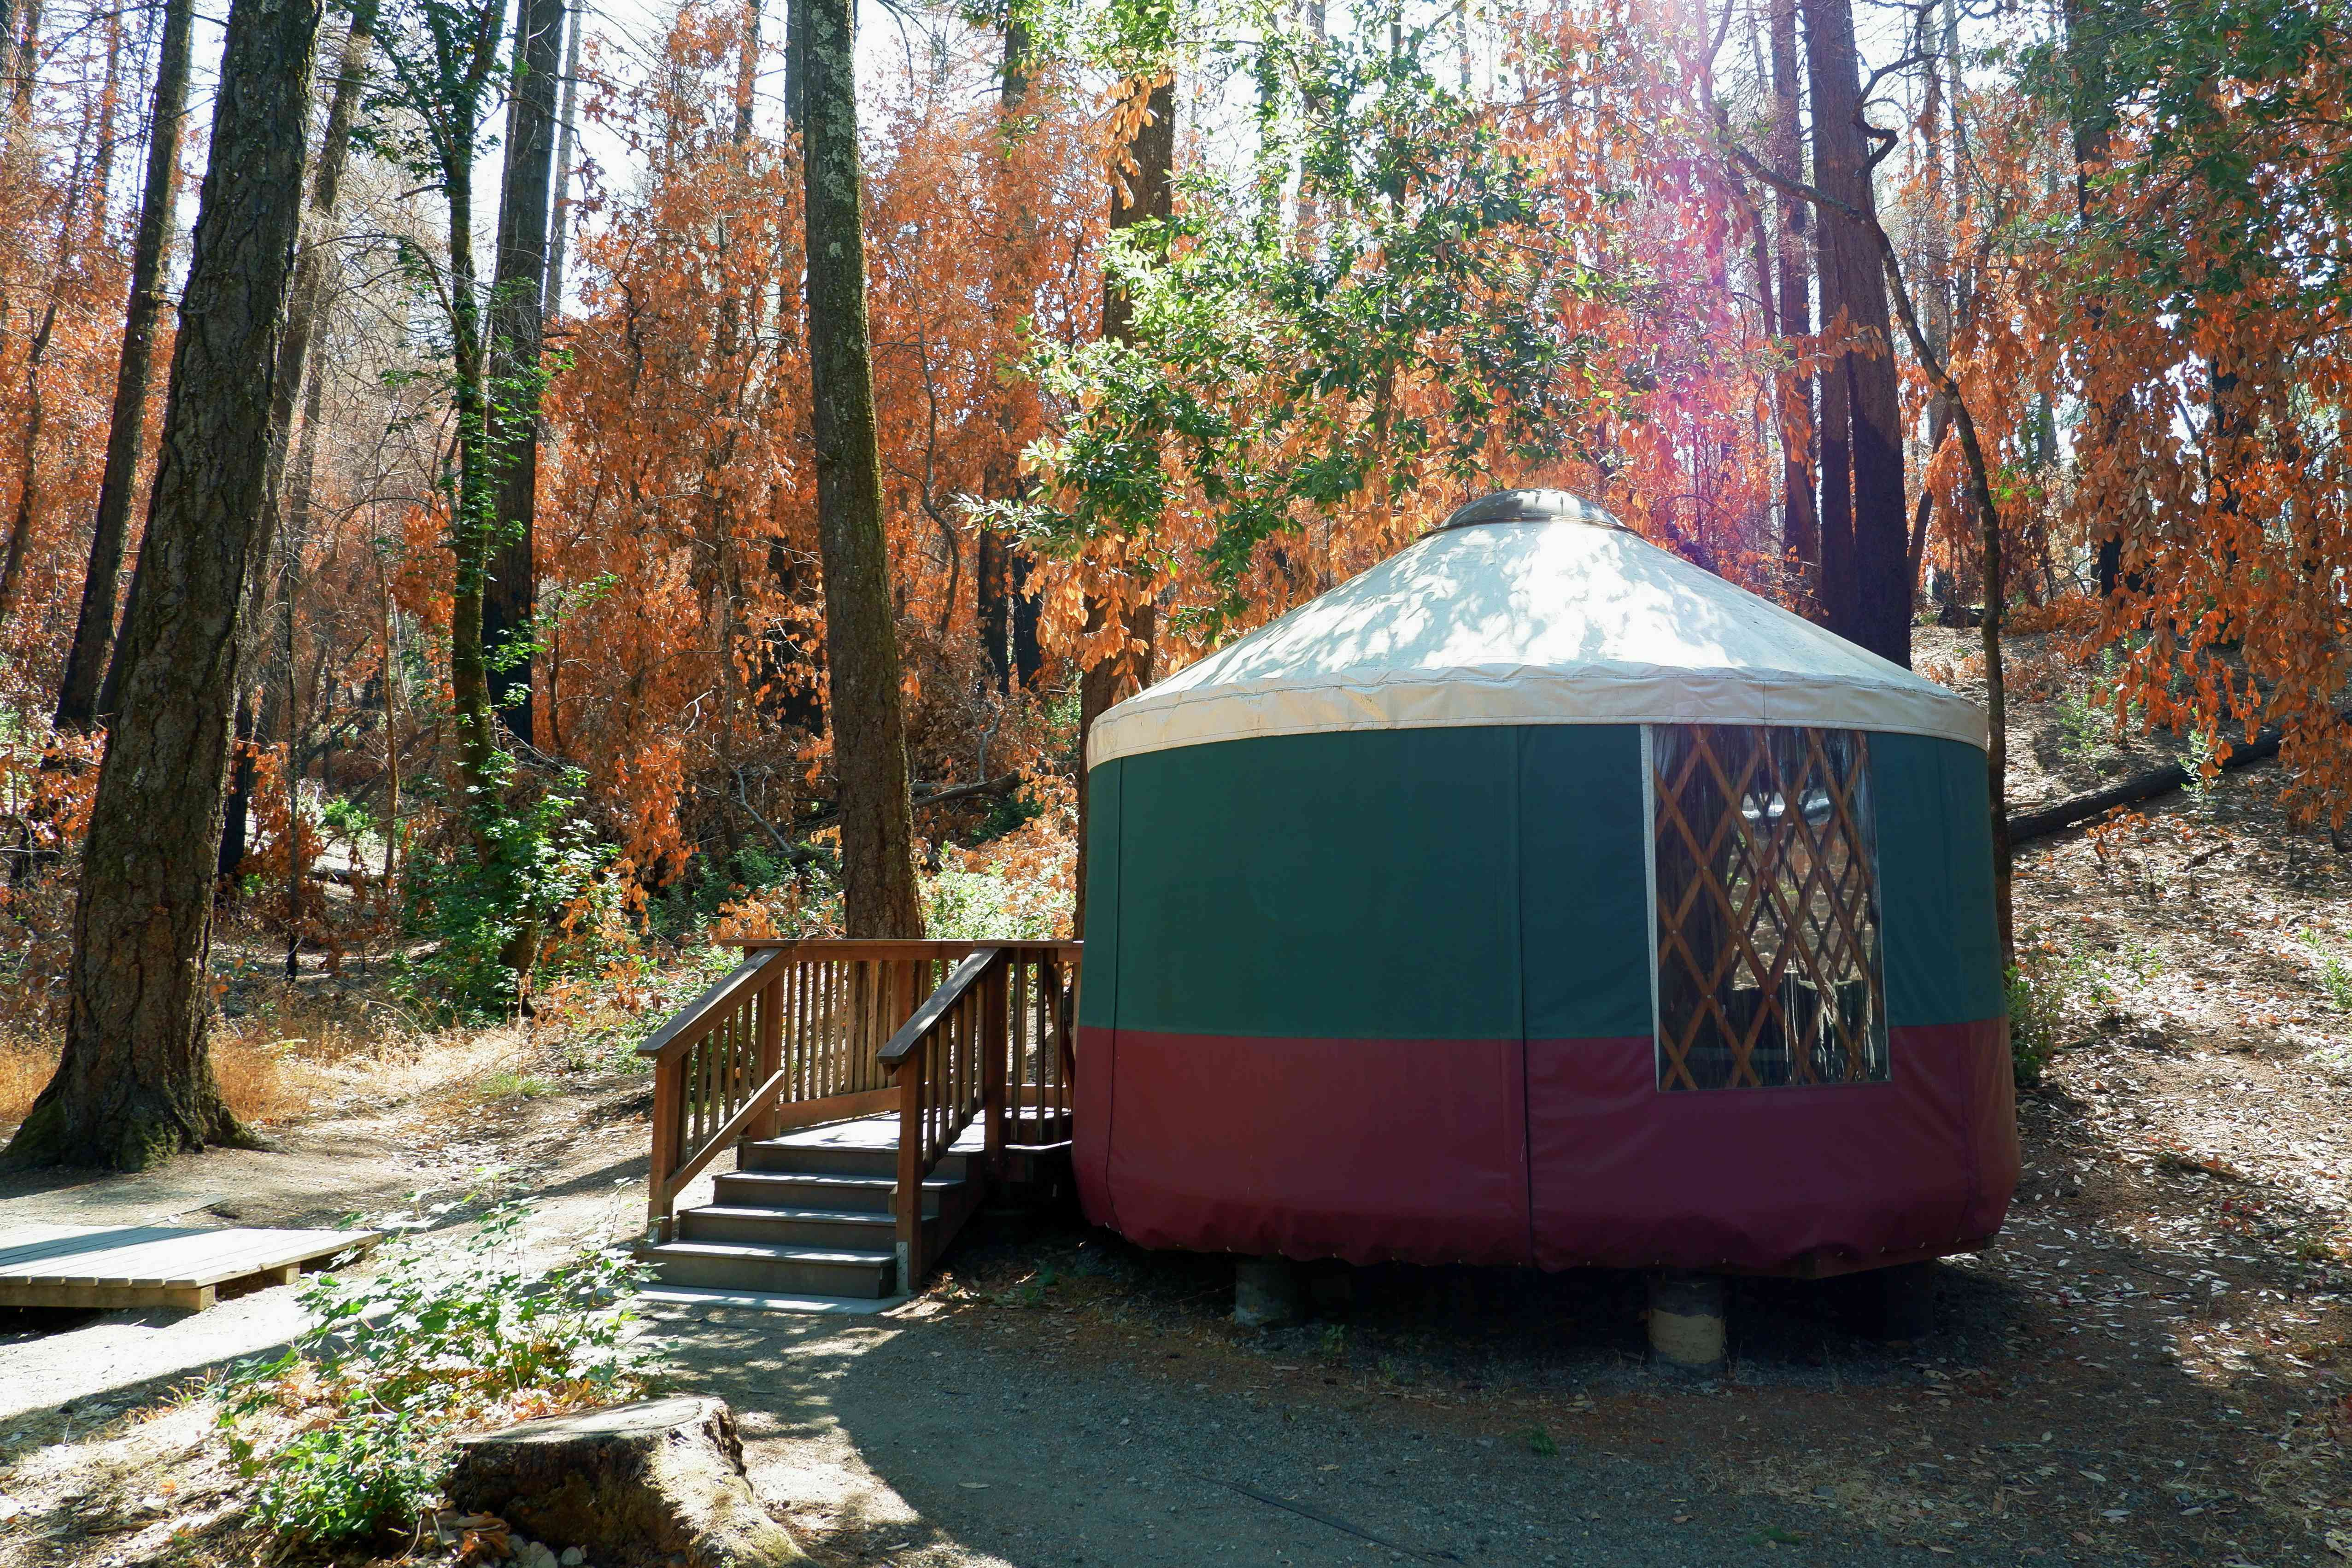 Camping yurt in Bothe State Park, Napa Valley, California.